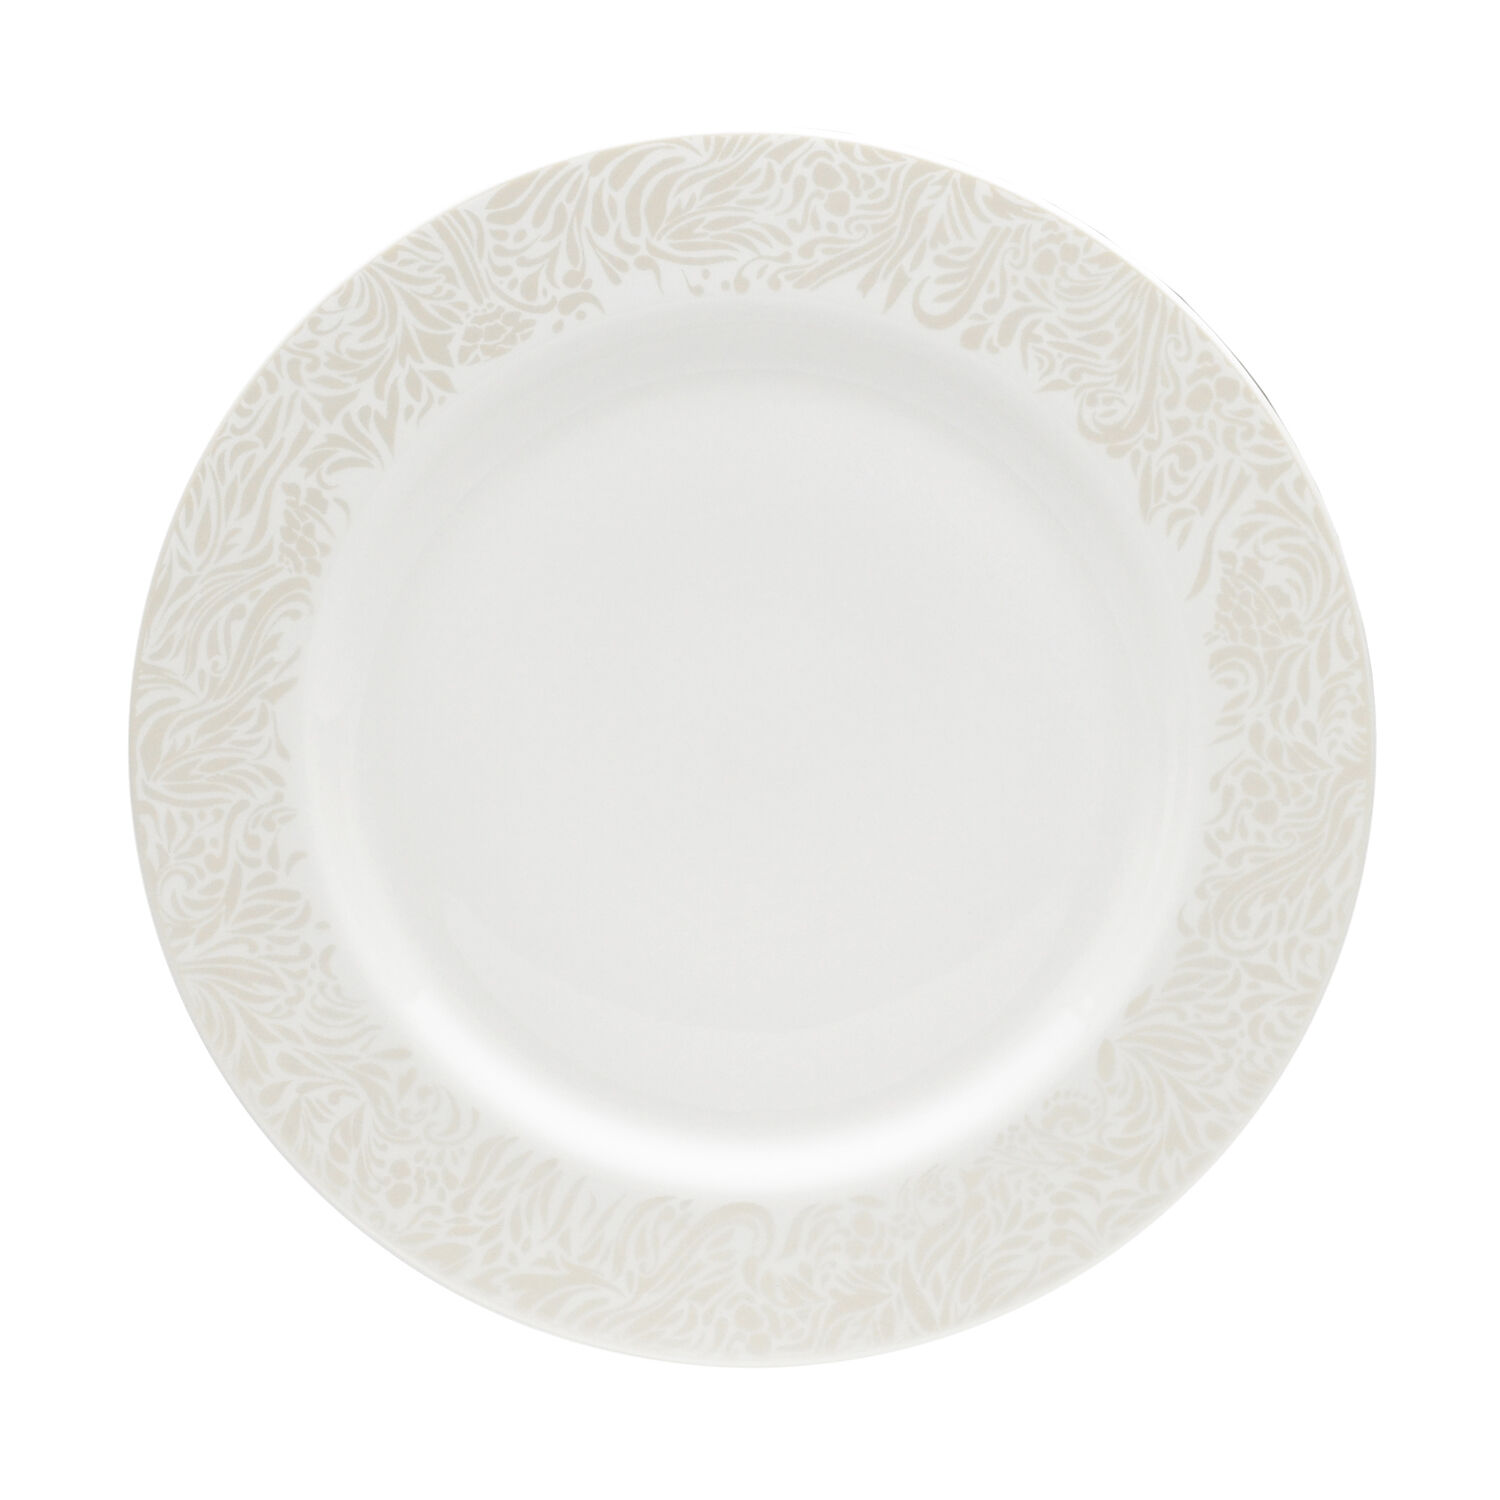 Denby Monsoon Lucille Gold Dinner Plate  sc 1 st  Homestore and More & Dinnerware Collections - Home Store + More